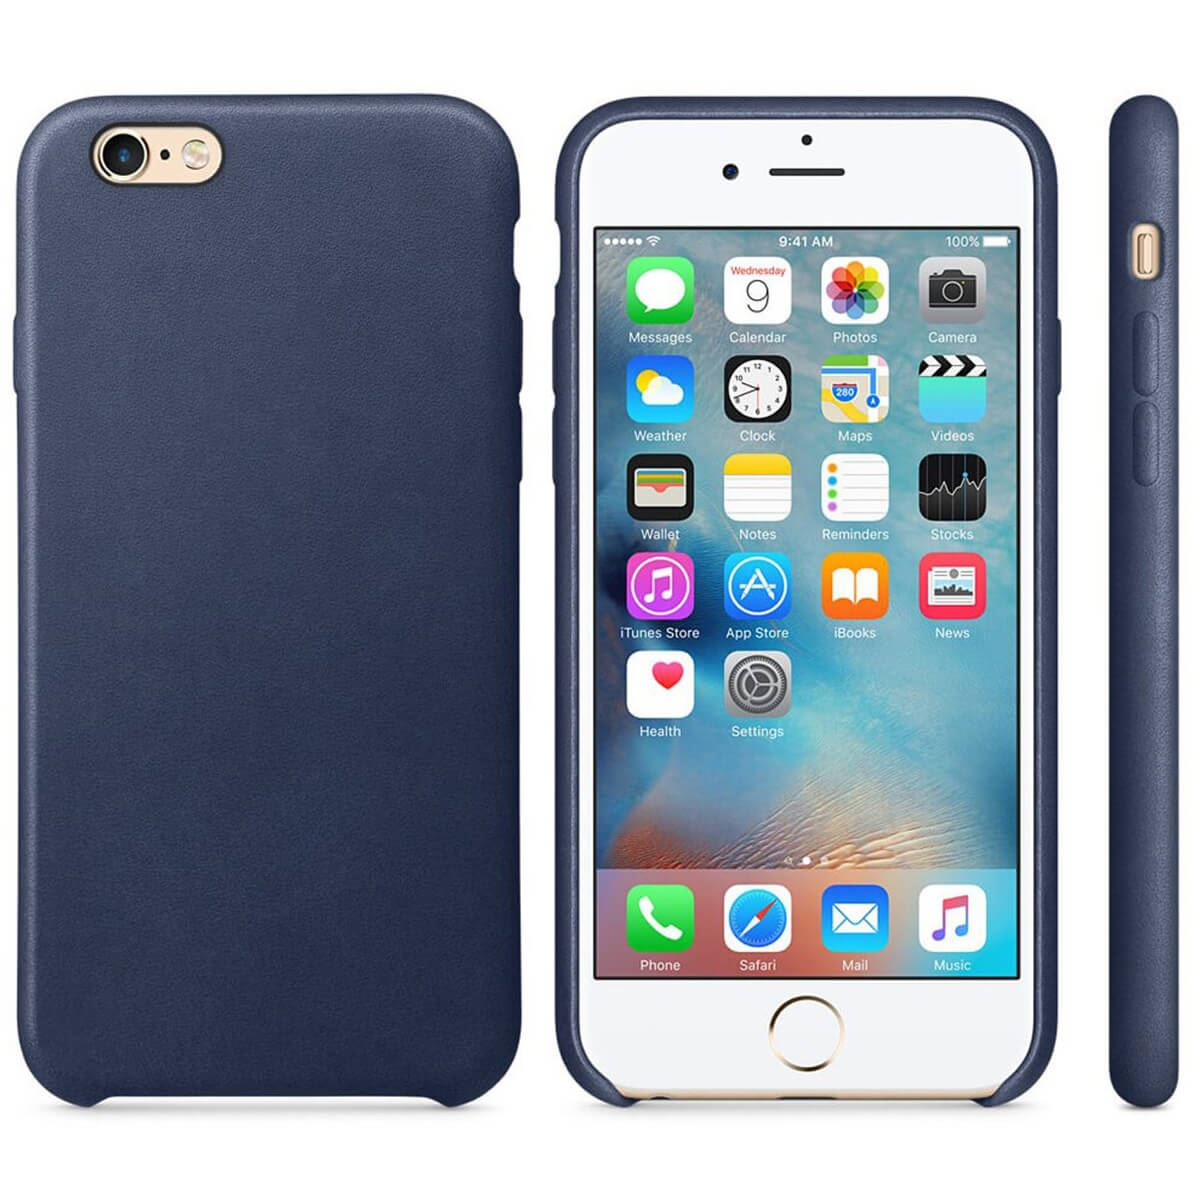 Liquid-Silicone-Shockproof-Case-For-Apple-iPhone-Soft-Matte-Back-Phone-Cover thumbnail 9